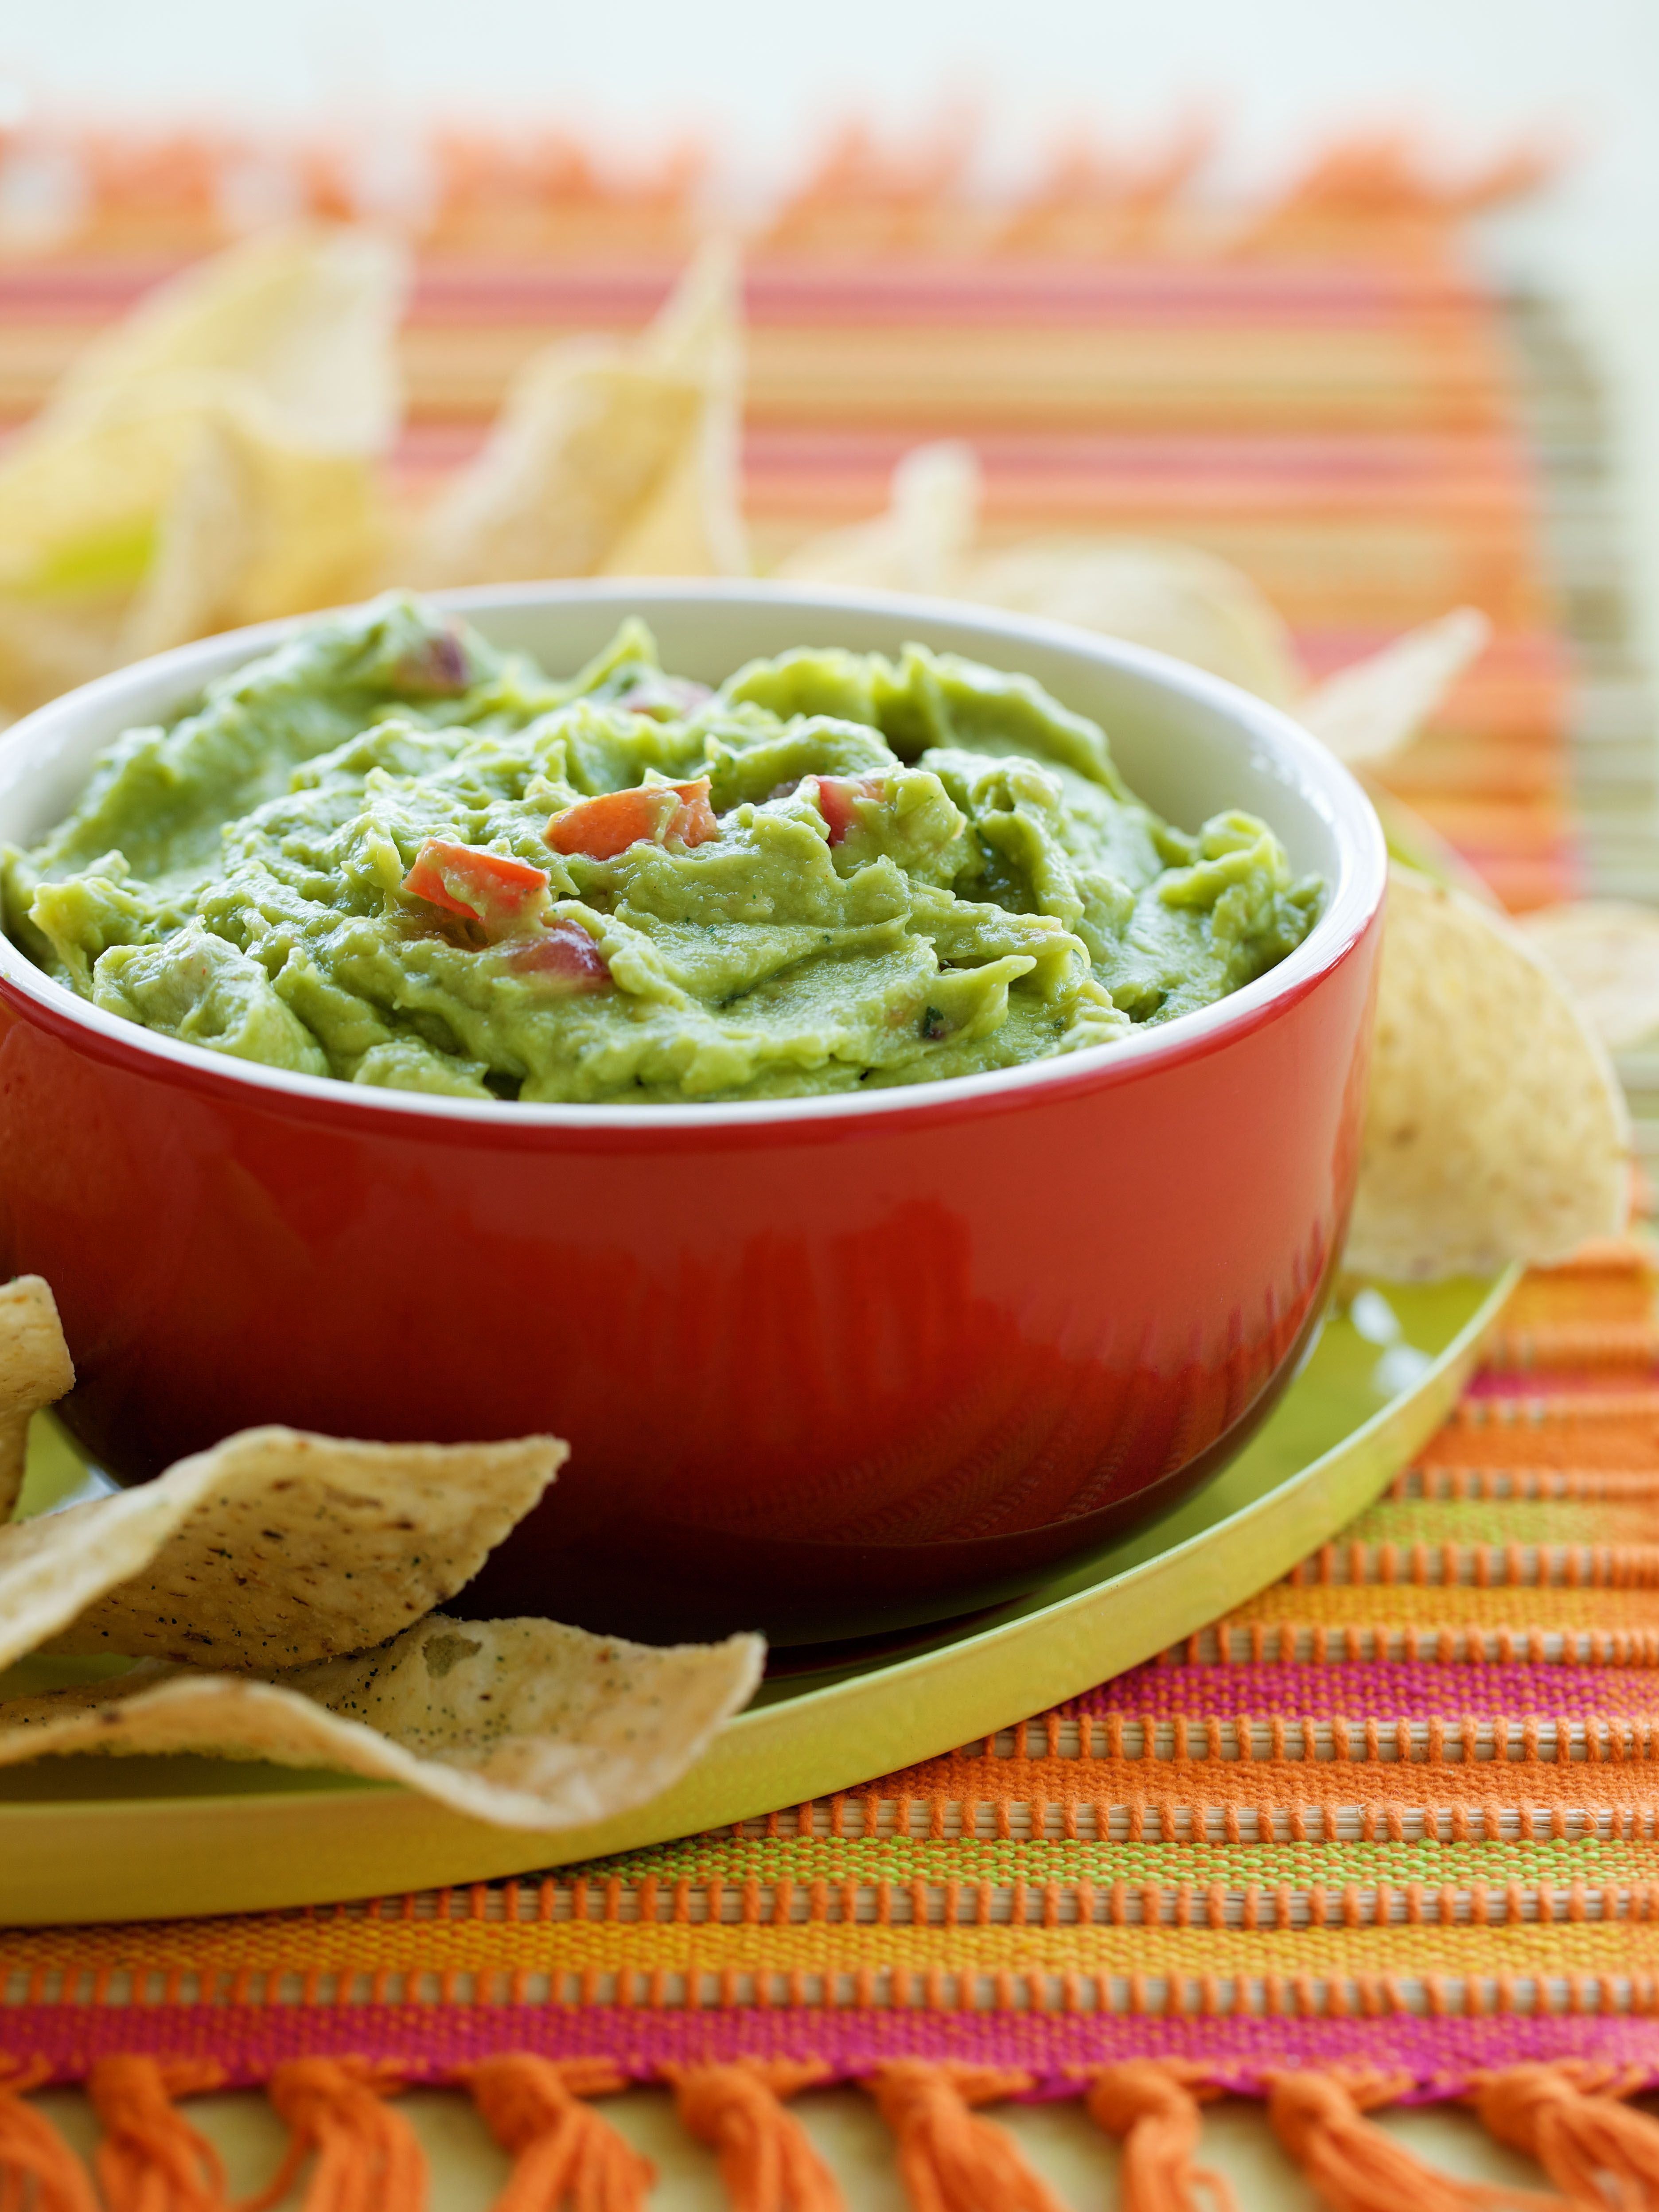 Guacamole recipe fiestas appetizer dips and dips guacamole easy clean eating recipesclean foodseating forumfinder Image collections